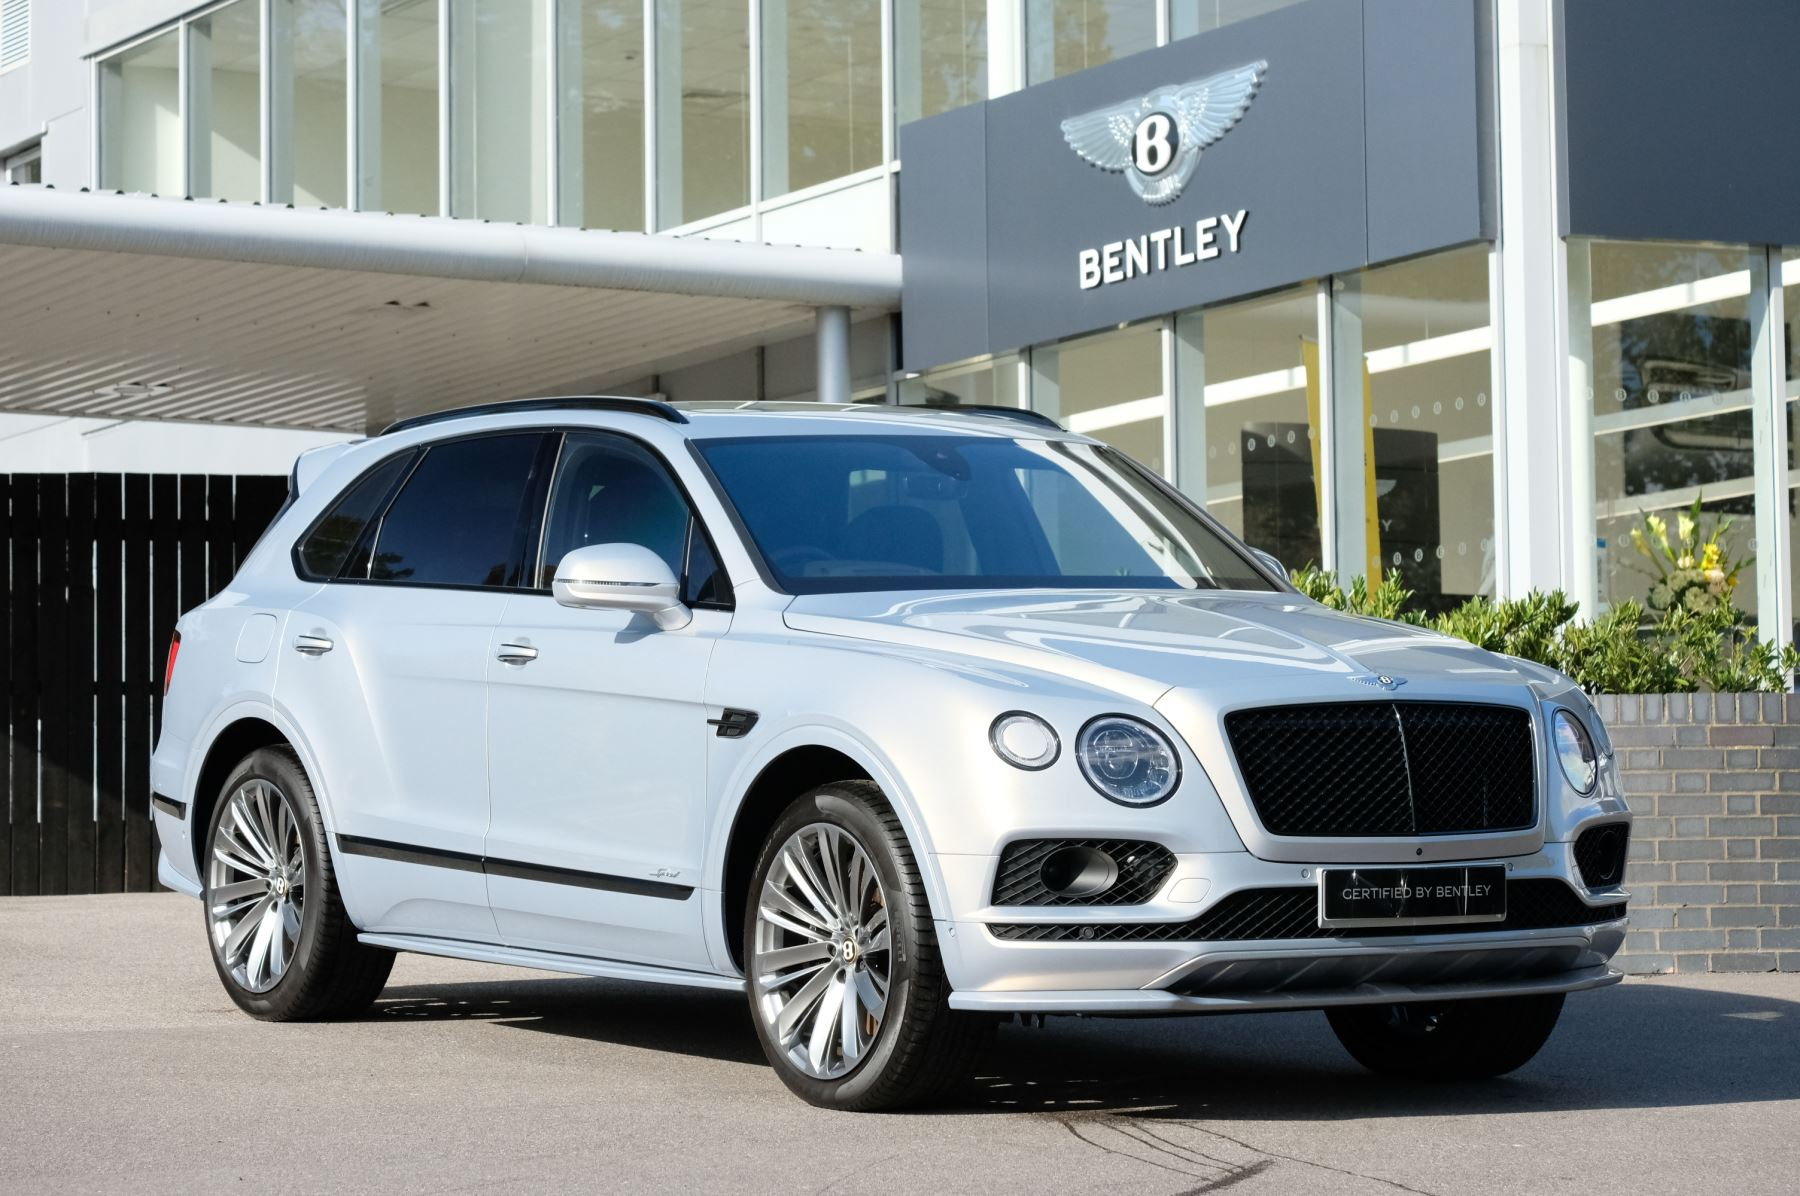 Bentley Bentayga Speed - City & Touring - 7 Seat Specification 6.0 Automatic 5 door Estate (2020)